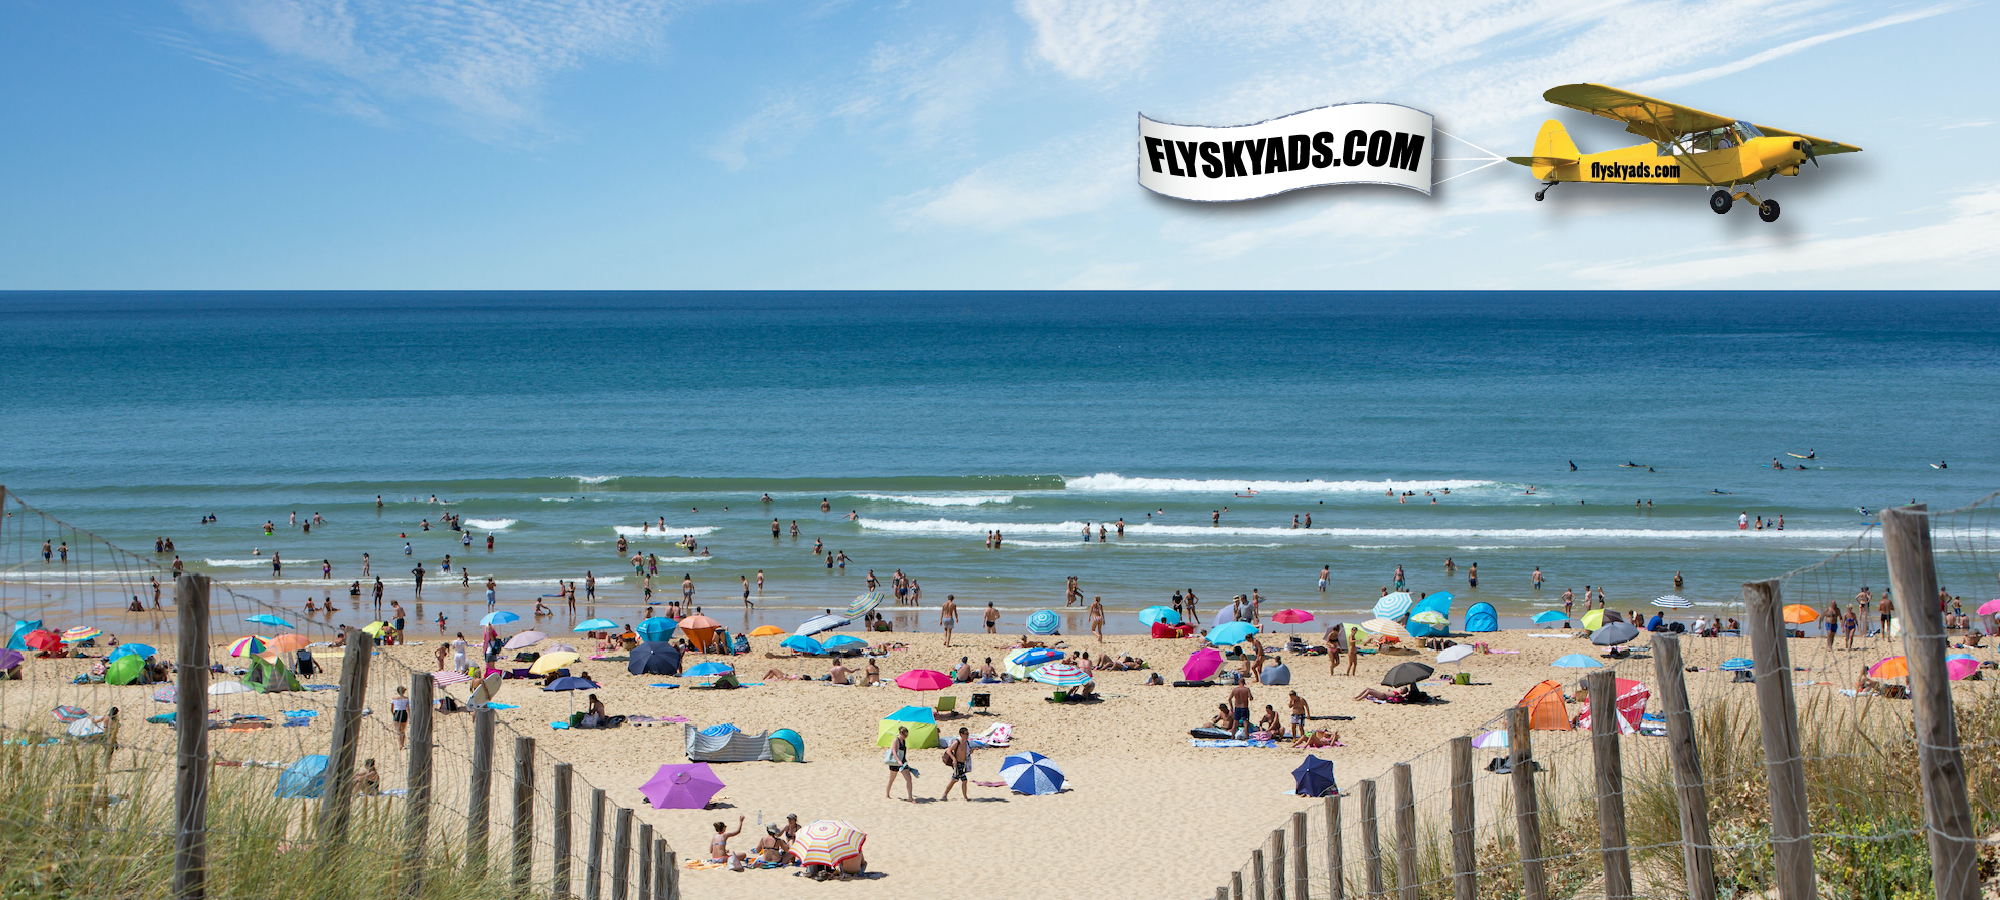 aerial banners nj